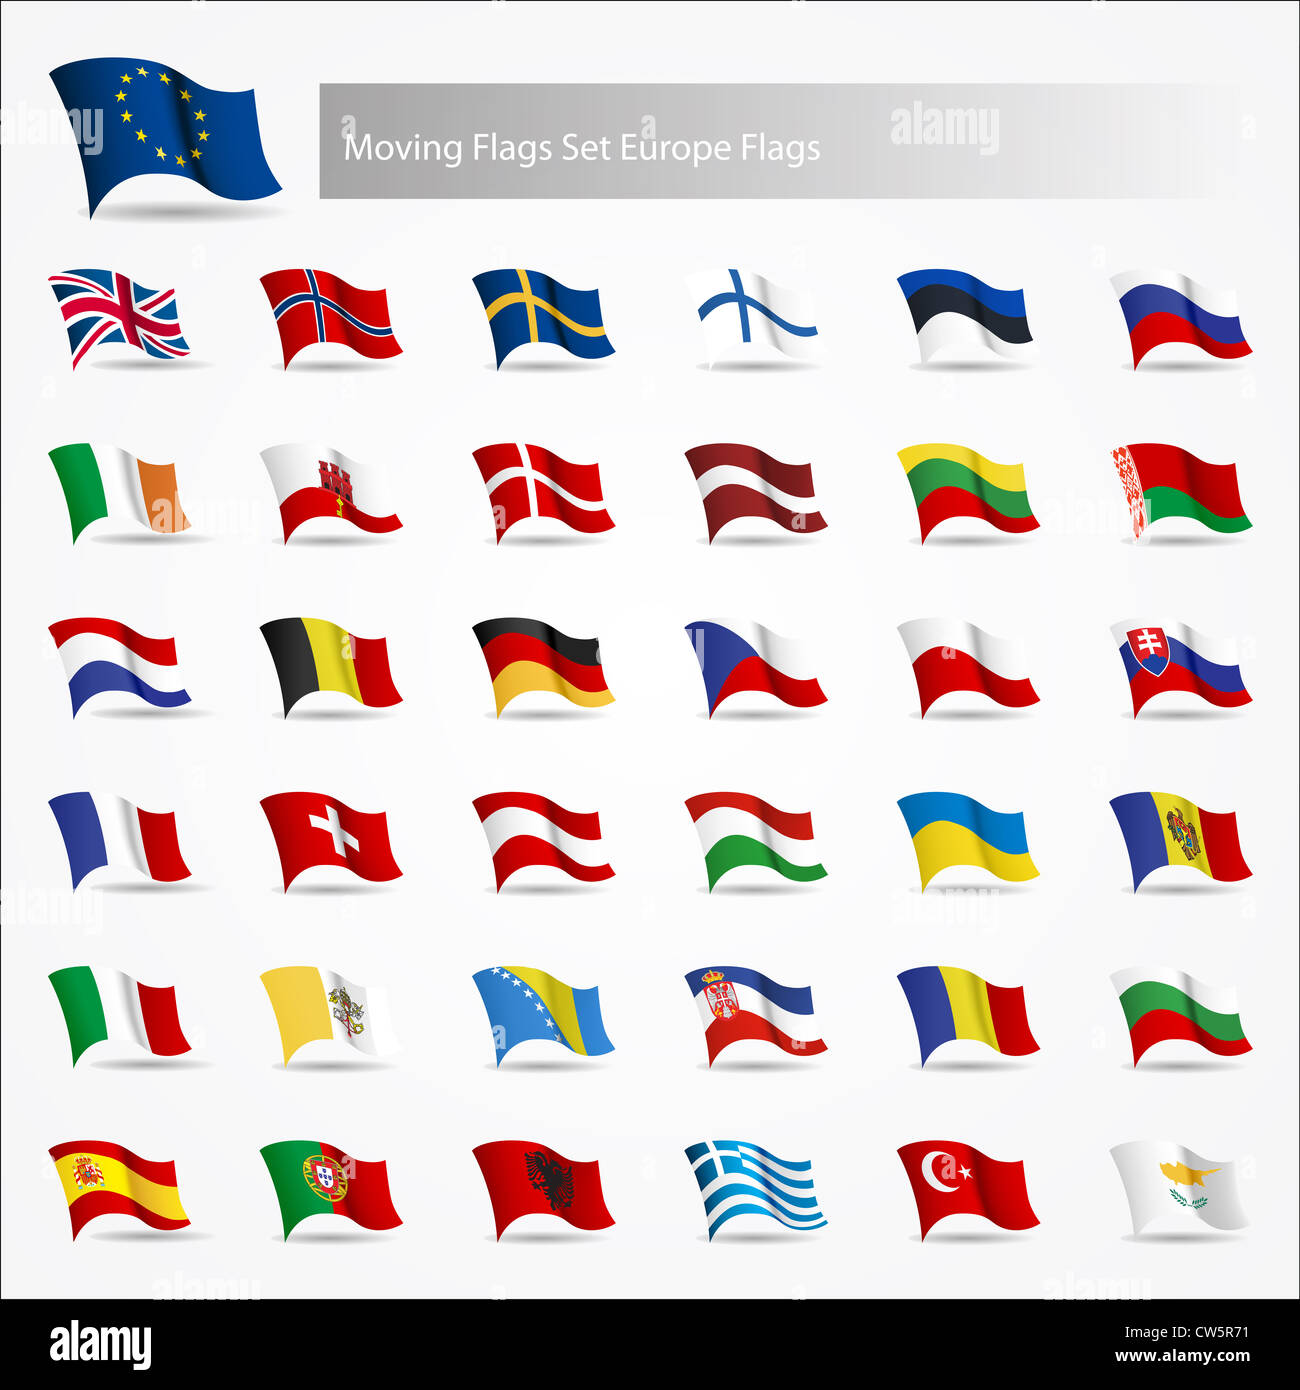 Moving flags set Europe flags on white background - Stock Image